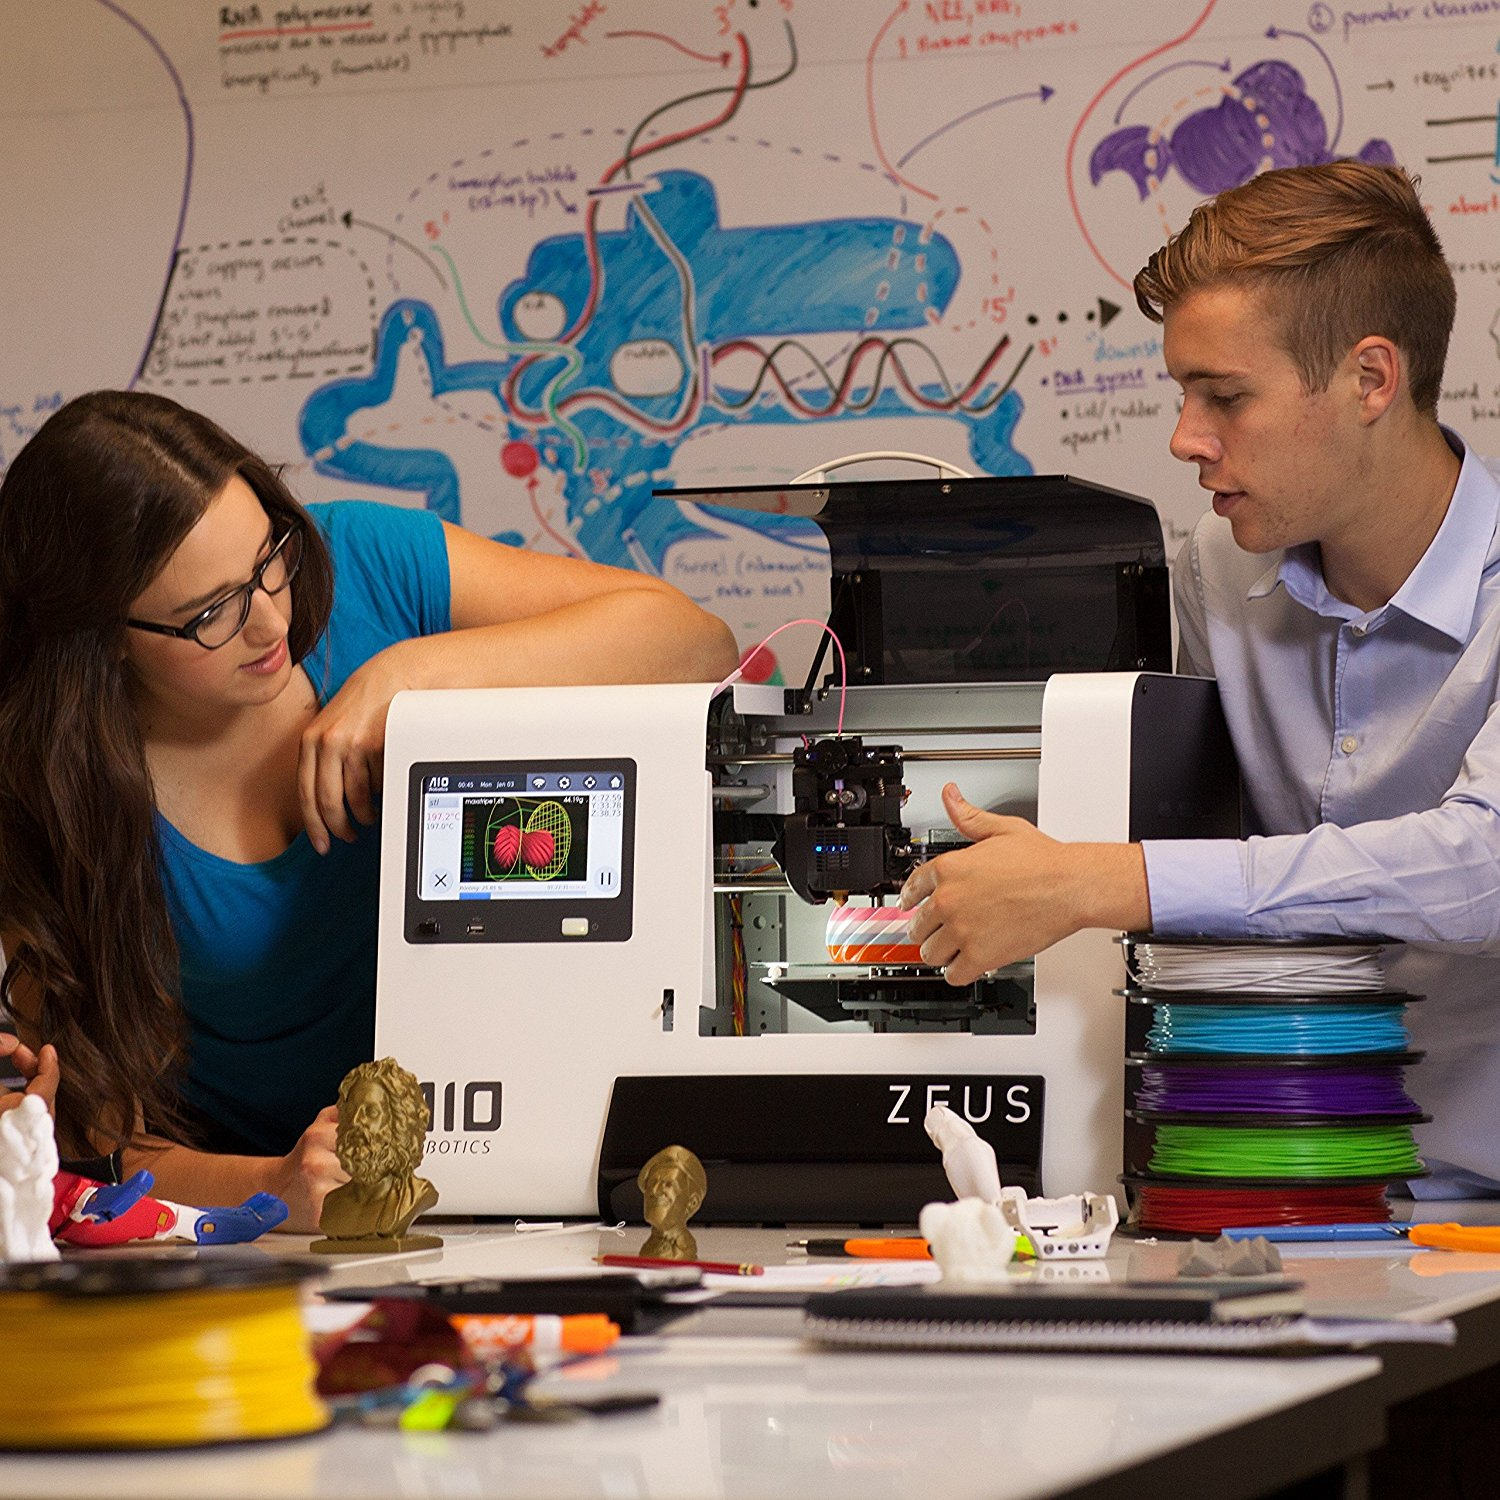 The typical idyllic 3D printing promotional image from AIO Robotics. The thing is, these machines really are incredible creative and functional tools in the right hands. I'm a fan and participant in this (slow) revolution.